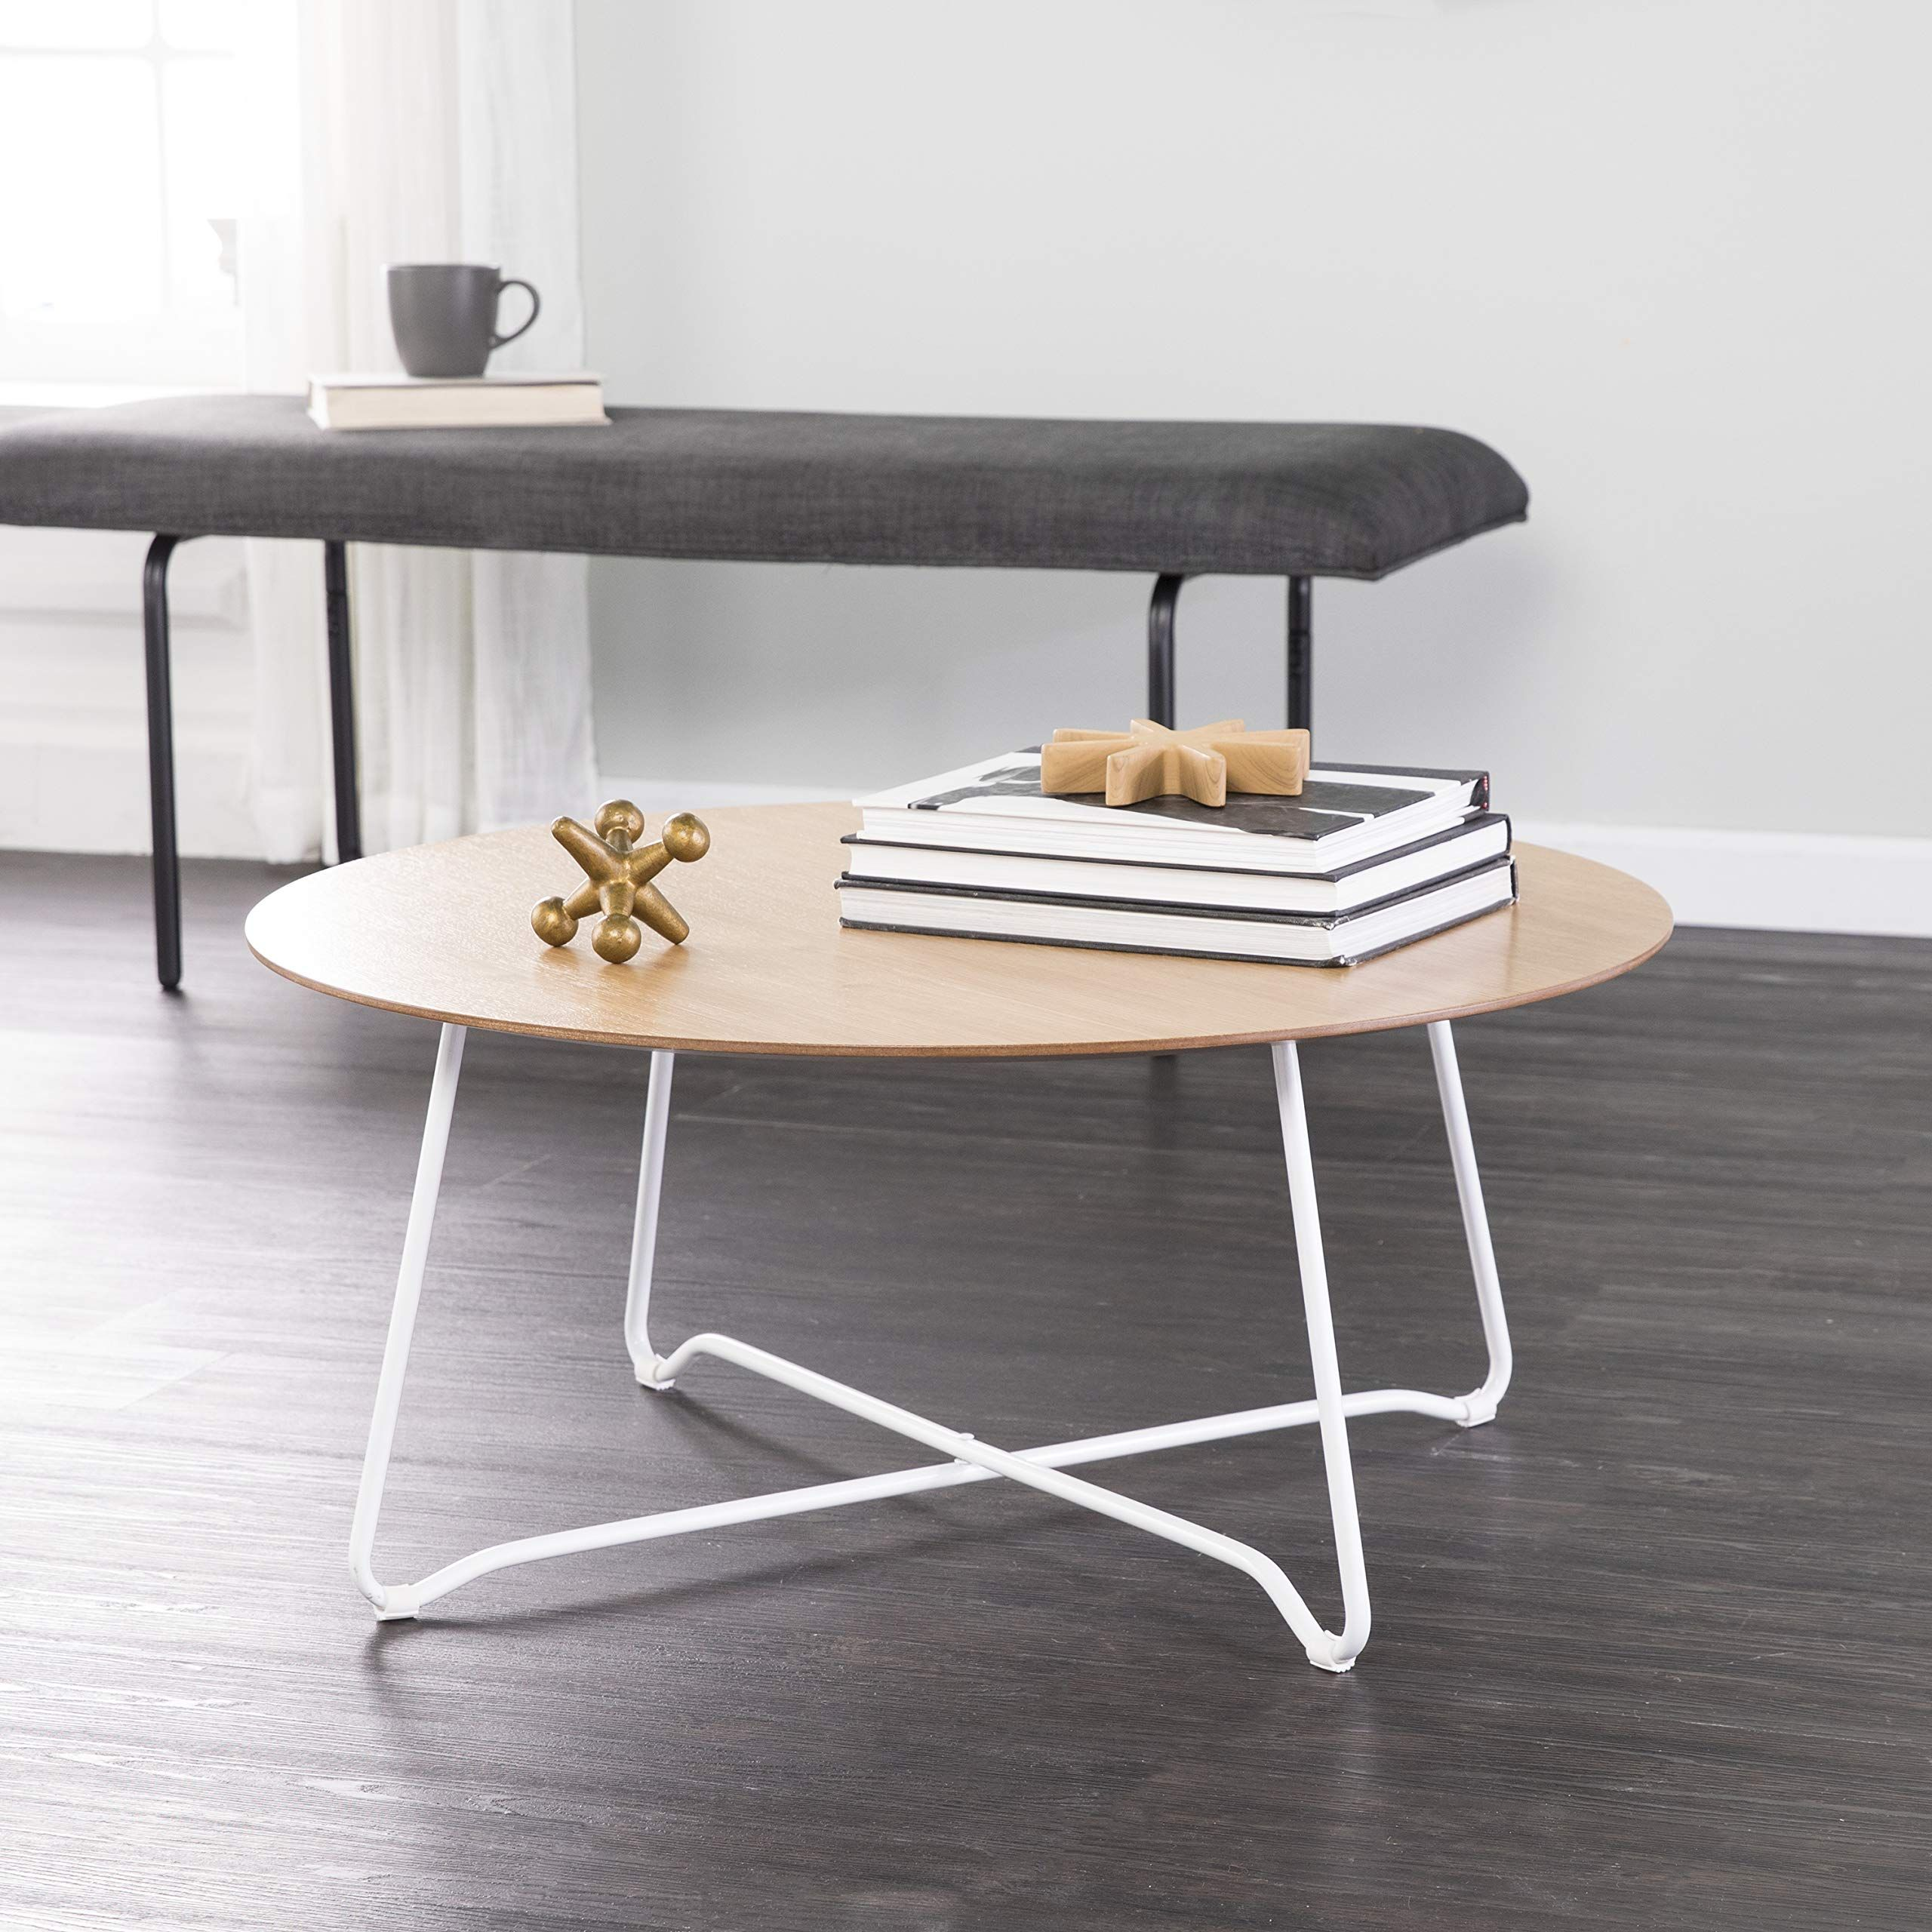 Holly And Martin Kacheri Wood And Metal Coffee Table Round You Can Learn More Details At Coffee Table Scandinavian Style Furniture Coffee Table With Storage [ 2560 x 2560 Pixel ]